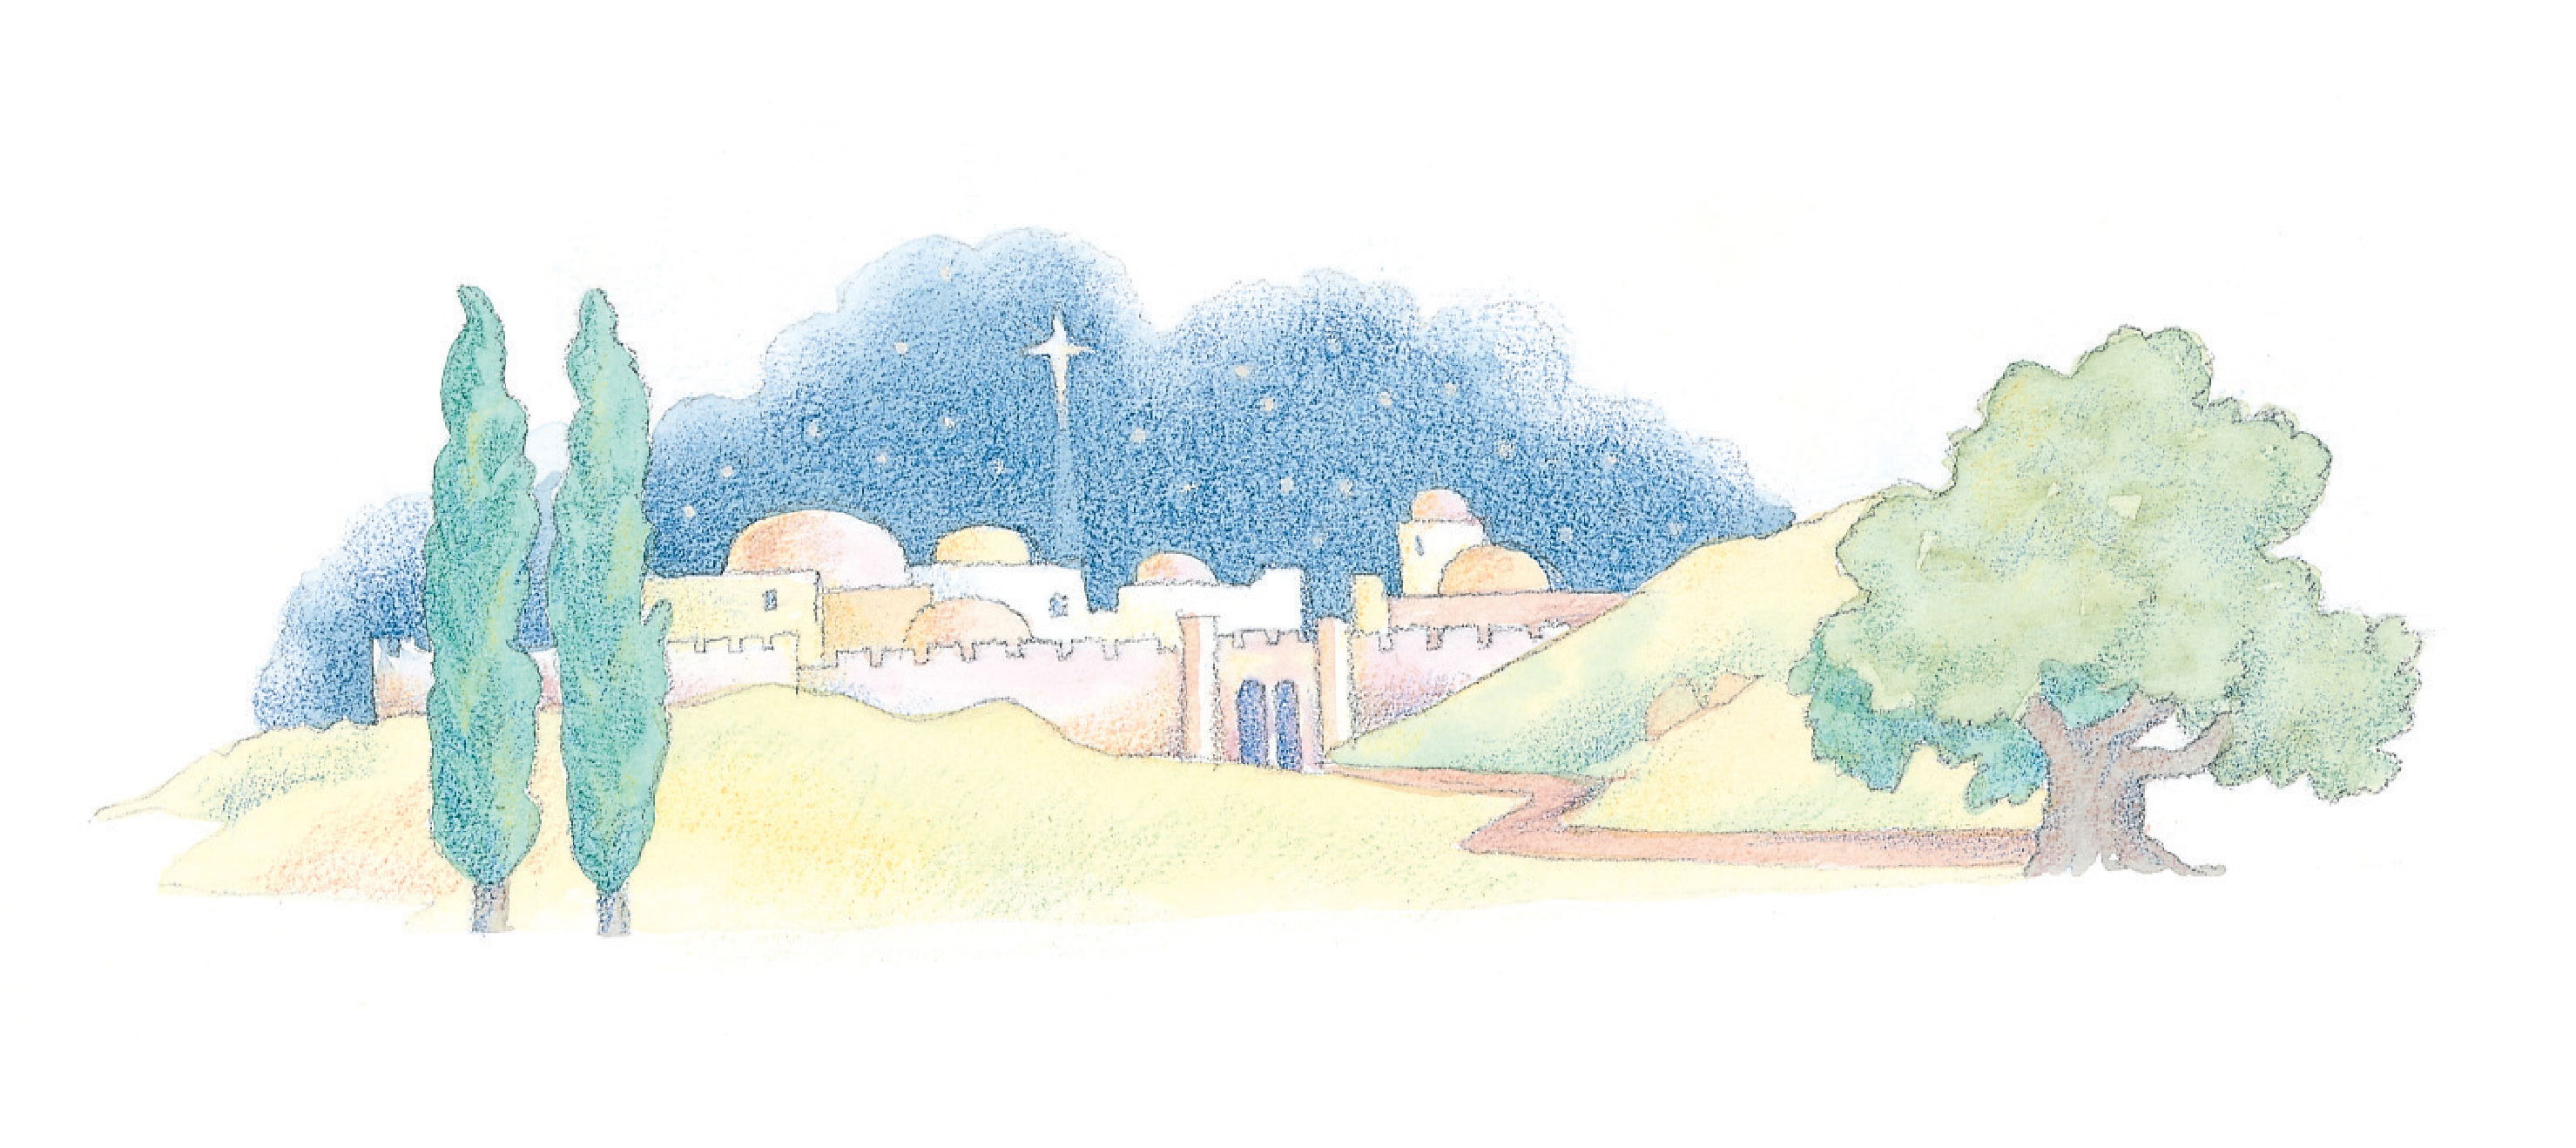 """Bethlehem at night. From the Children's Songbook, page 37, """"Stars Were Gleaming""""; watercolor illustration by Phyllis Luch."""